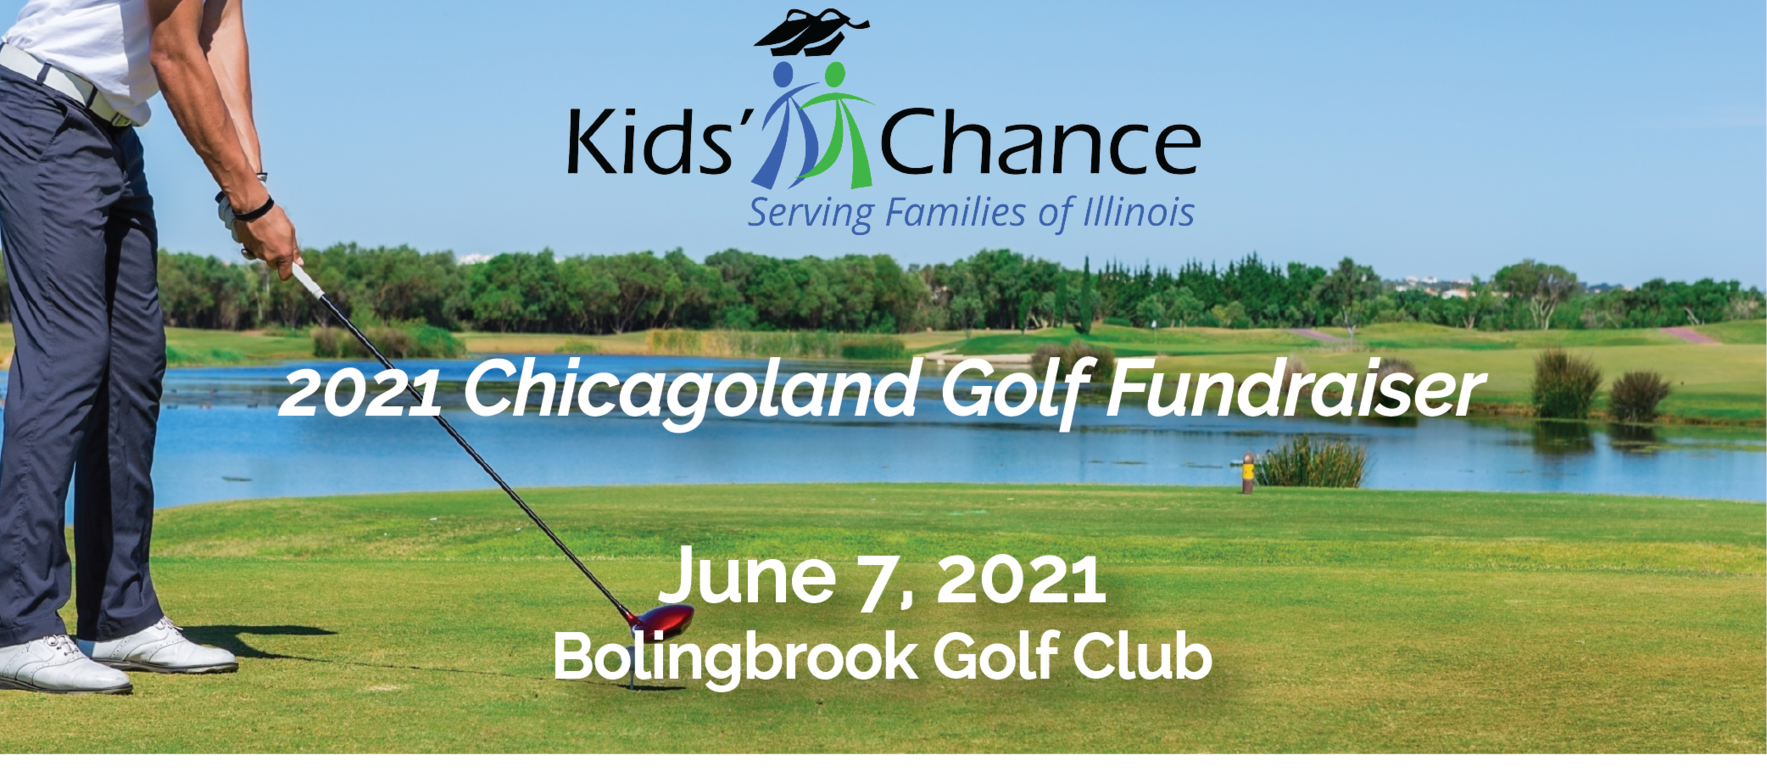 2021 Kids' Chance of Illinois Chicagoland Golf Fundraiser image